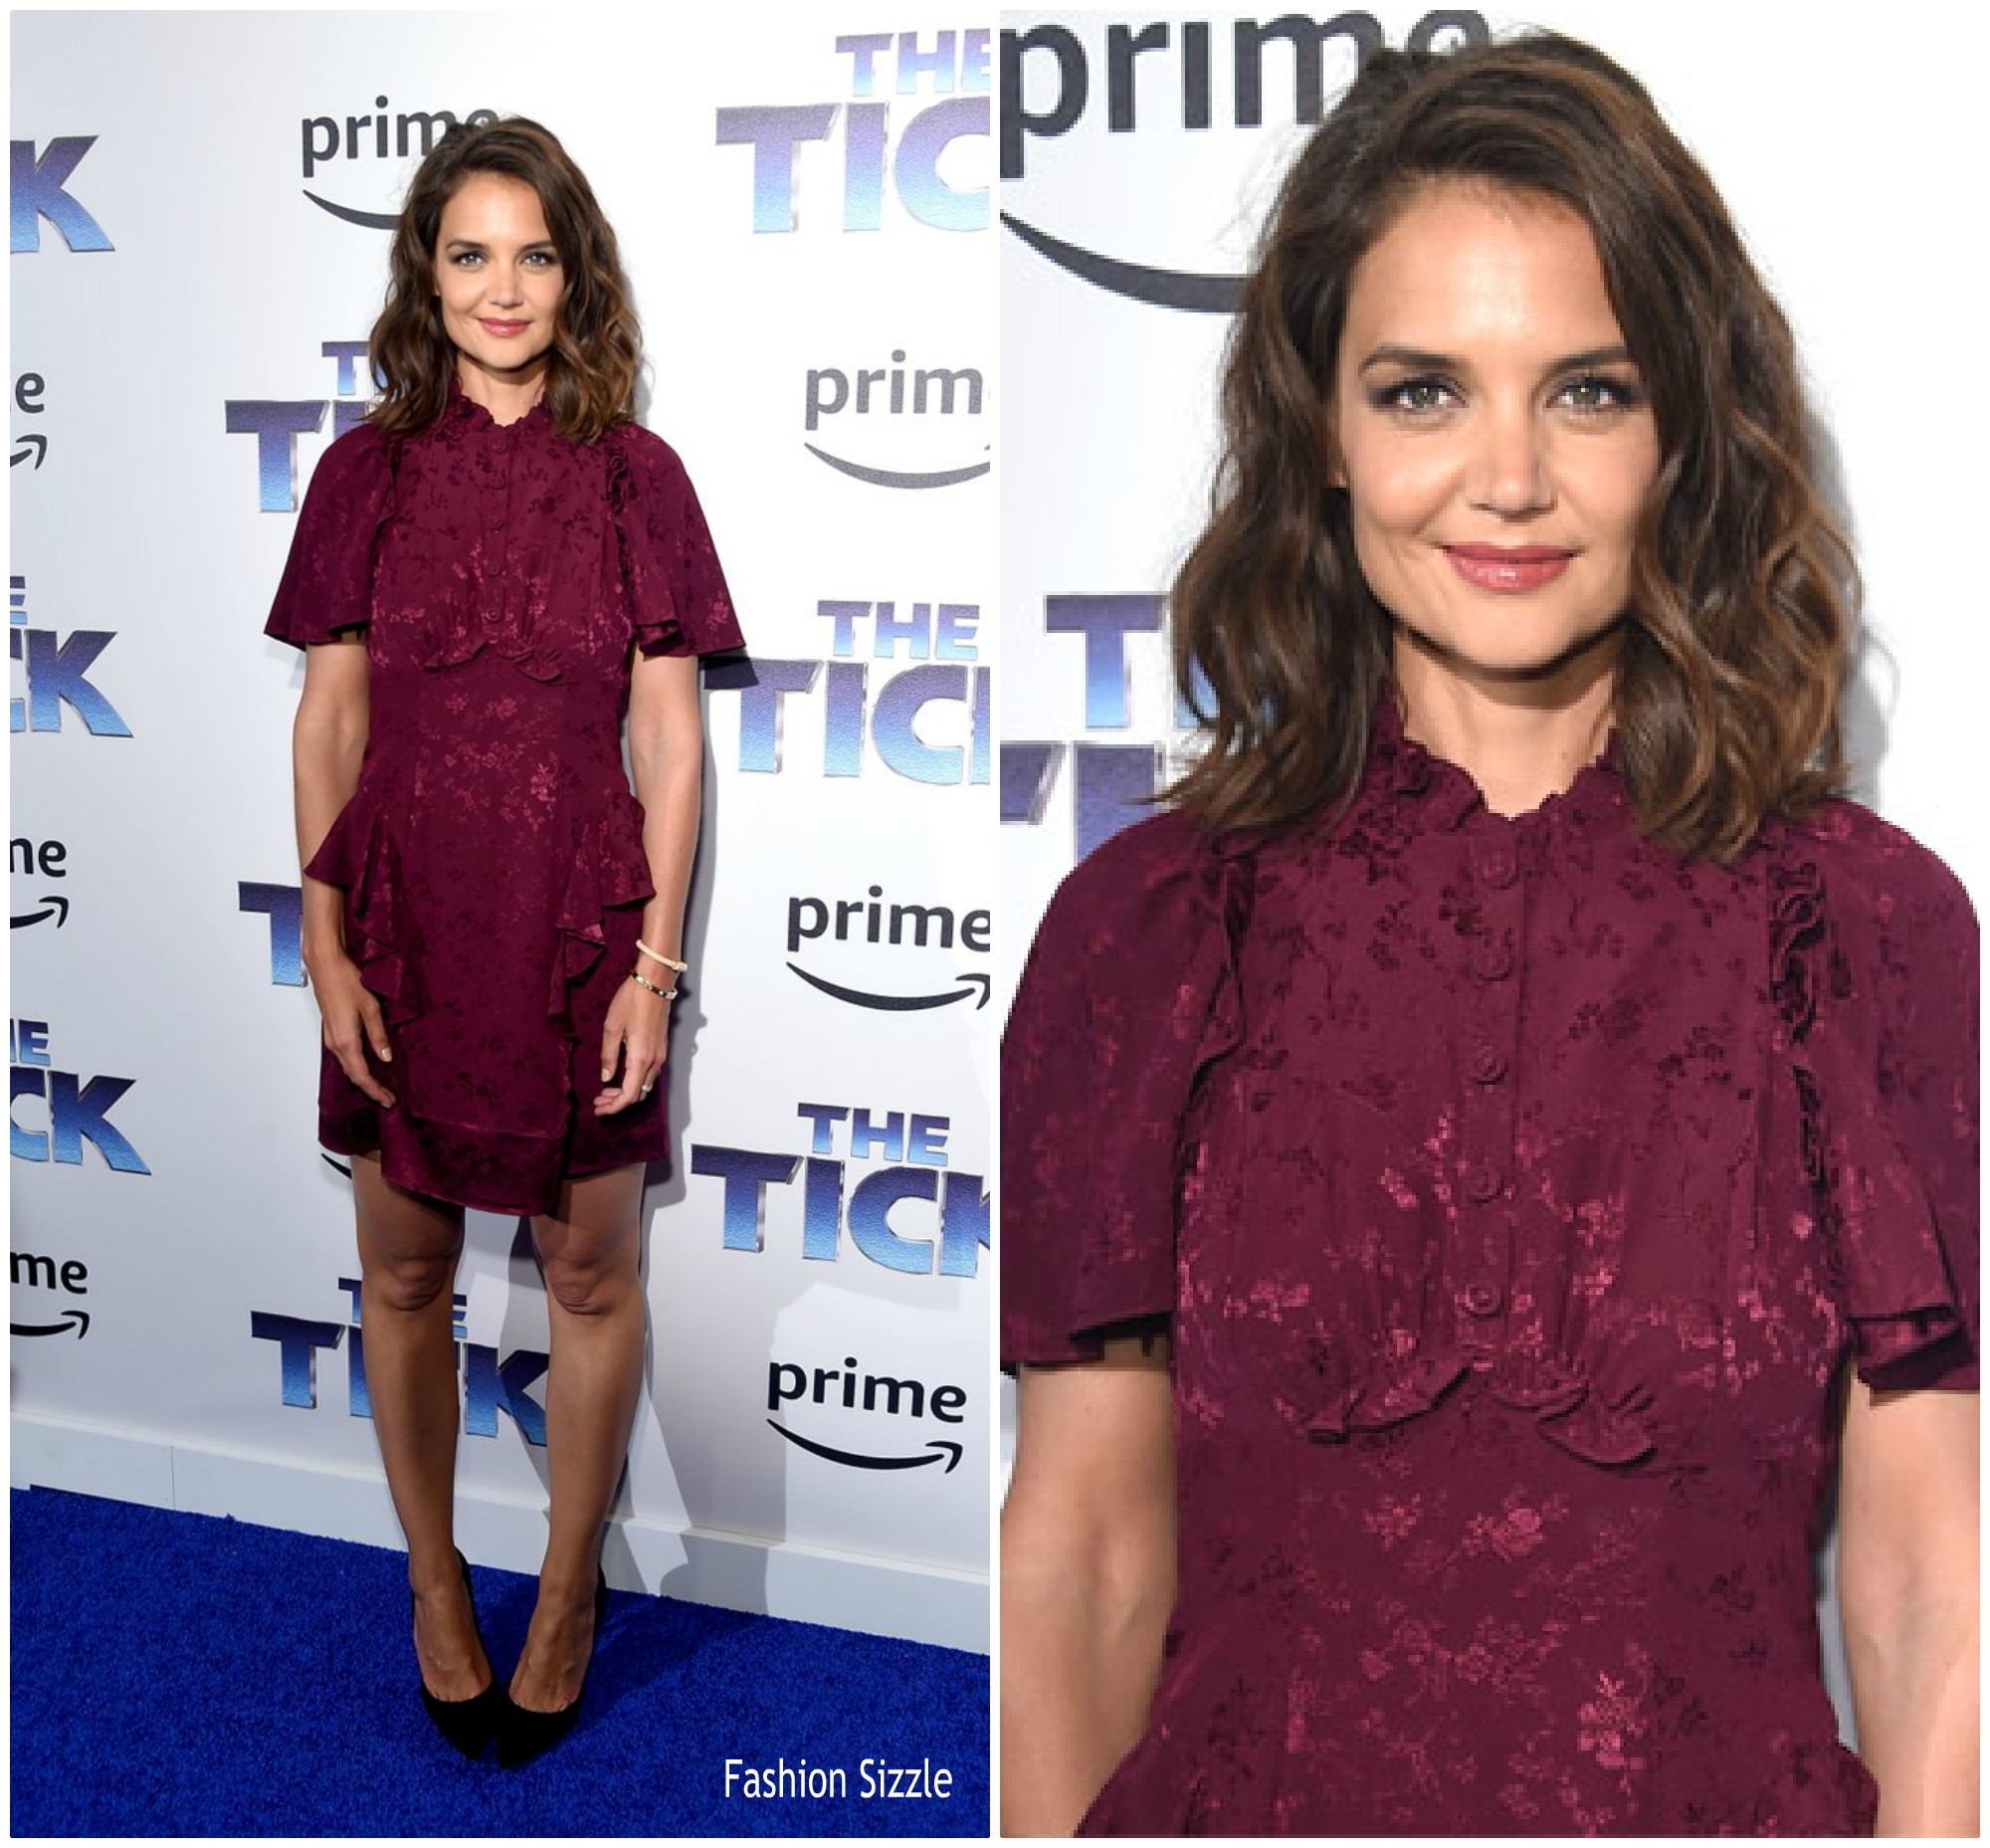 katie-holmes-in-maison-mayle-the-tick-blue-carpet-premiere